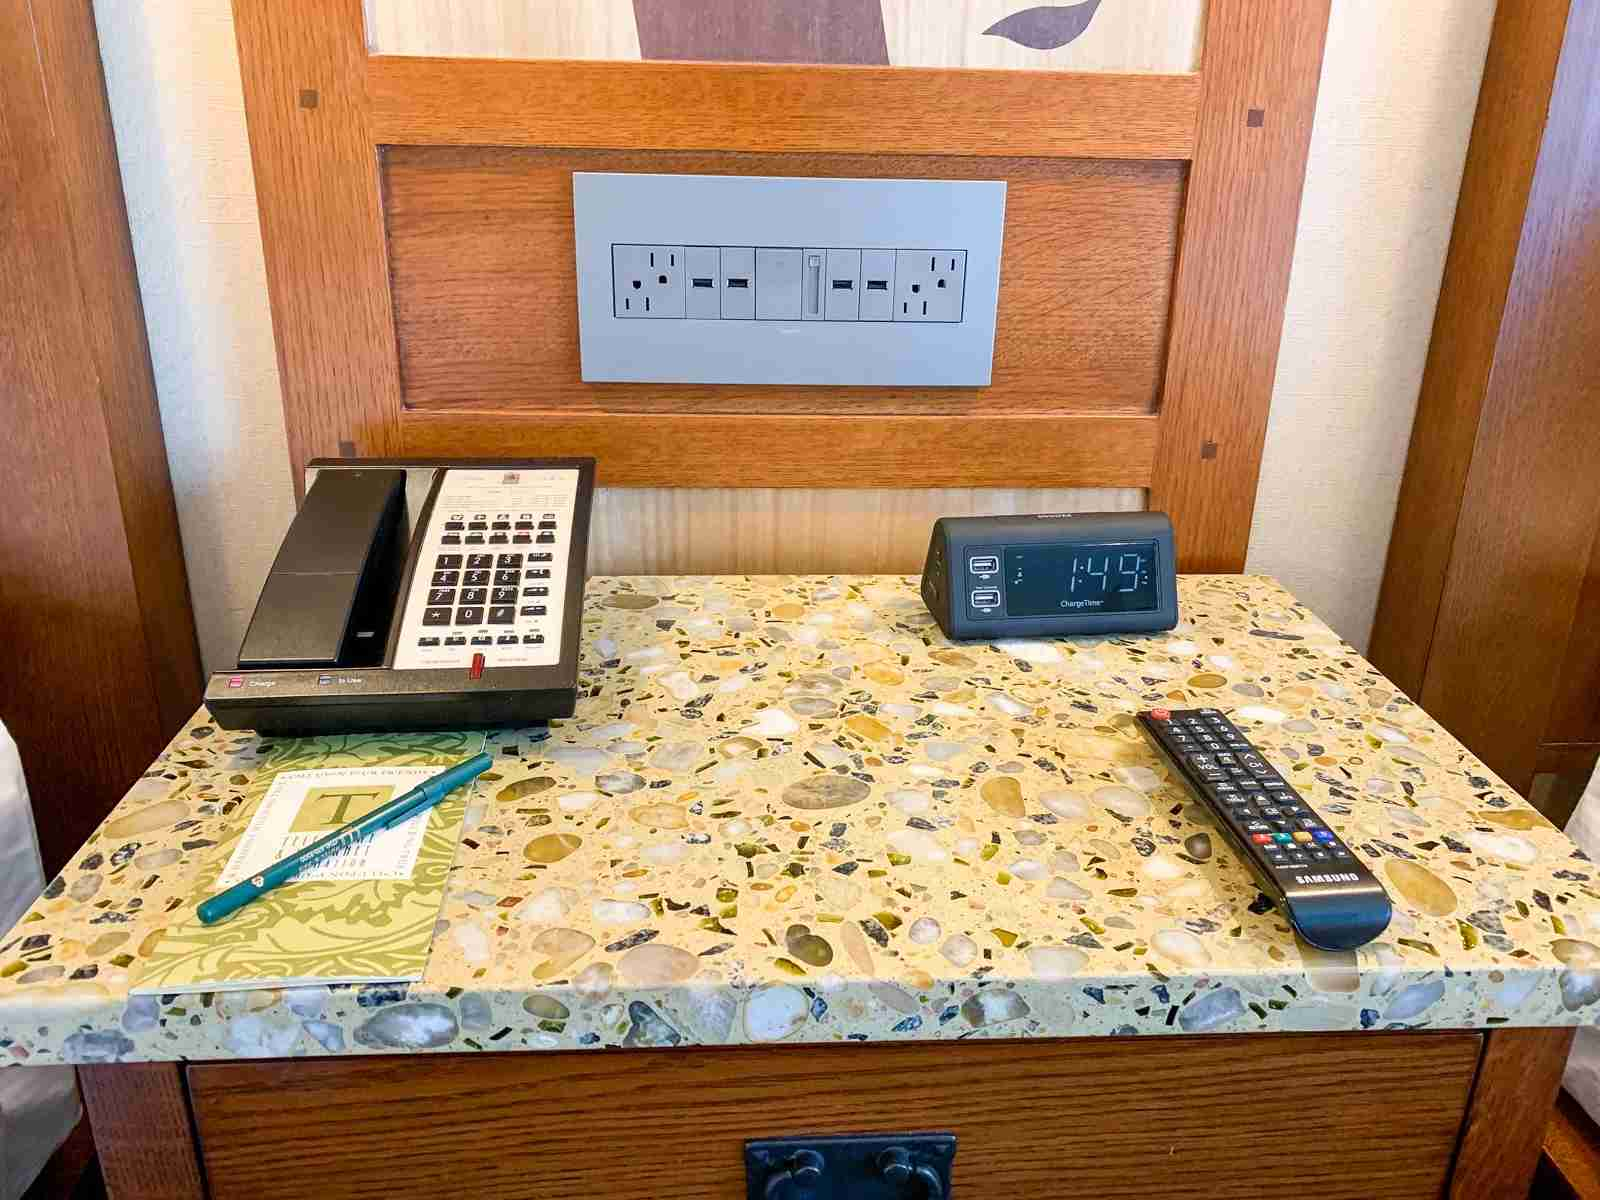 Disneyland Grand Californian Hotel Nightstand